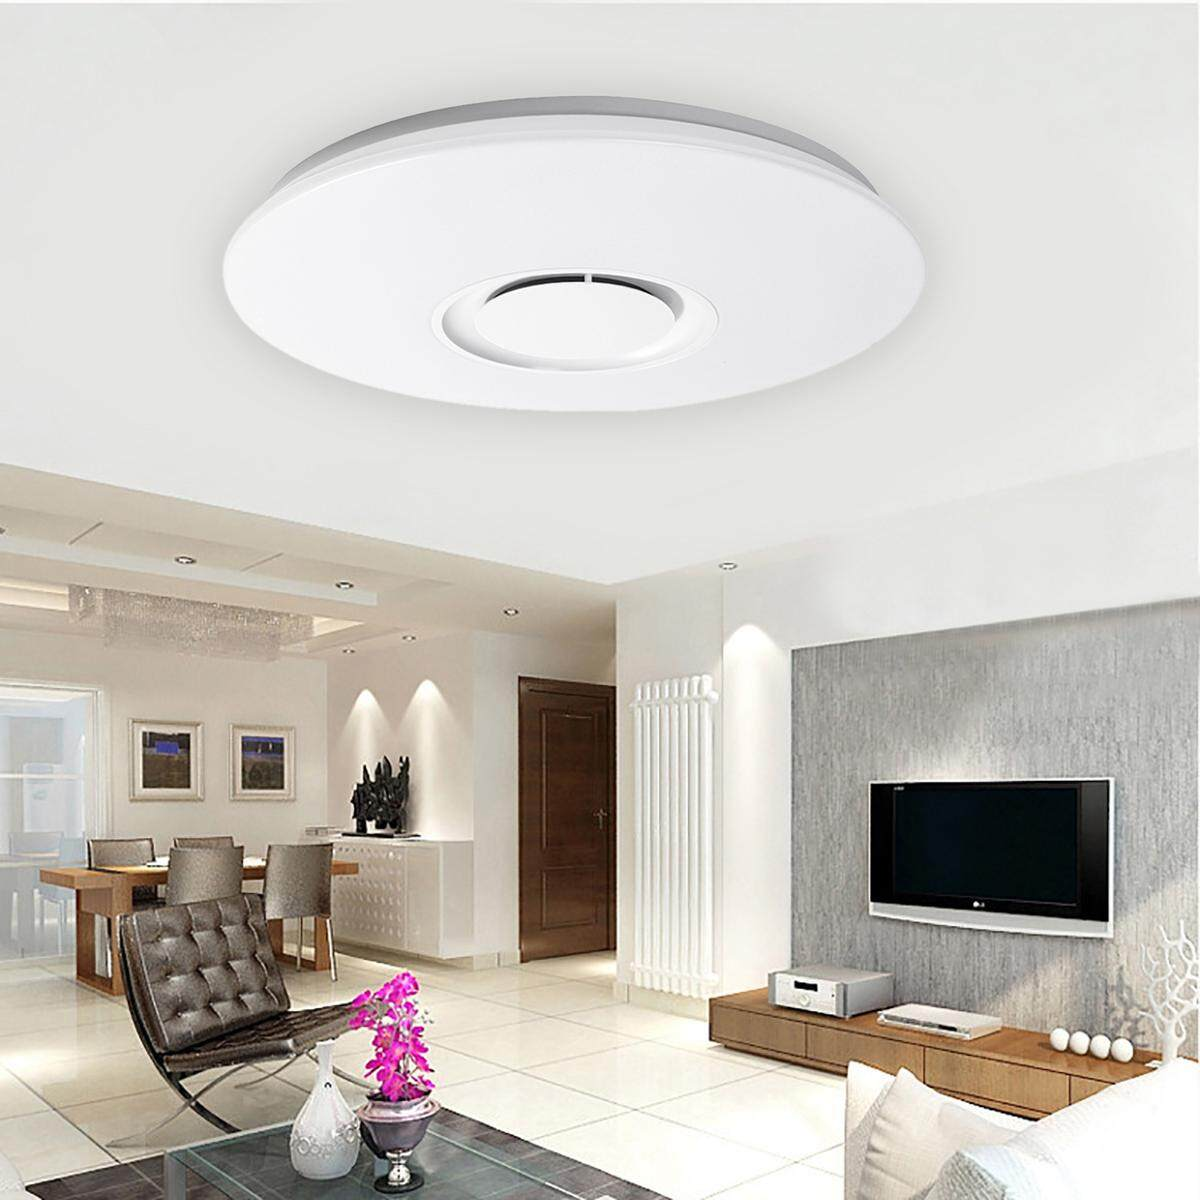 36W Bluetooth Speaker Smart LED Ceiling Light Dimmable Modern Lamp RGB Light Home Decor